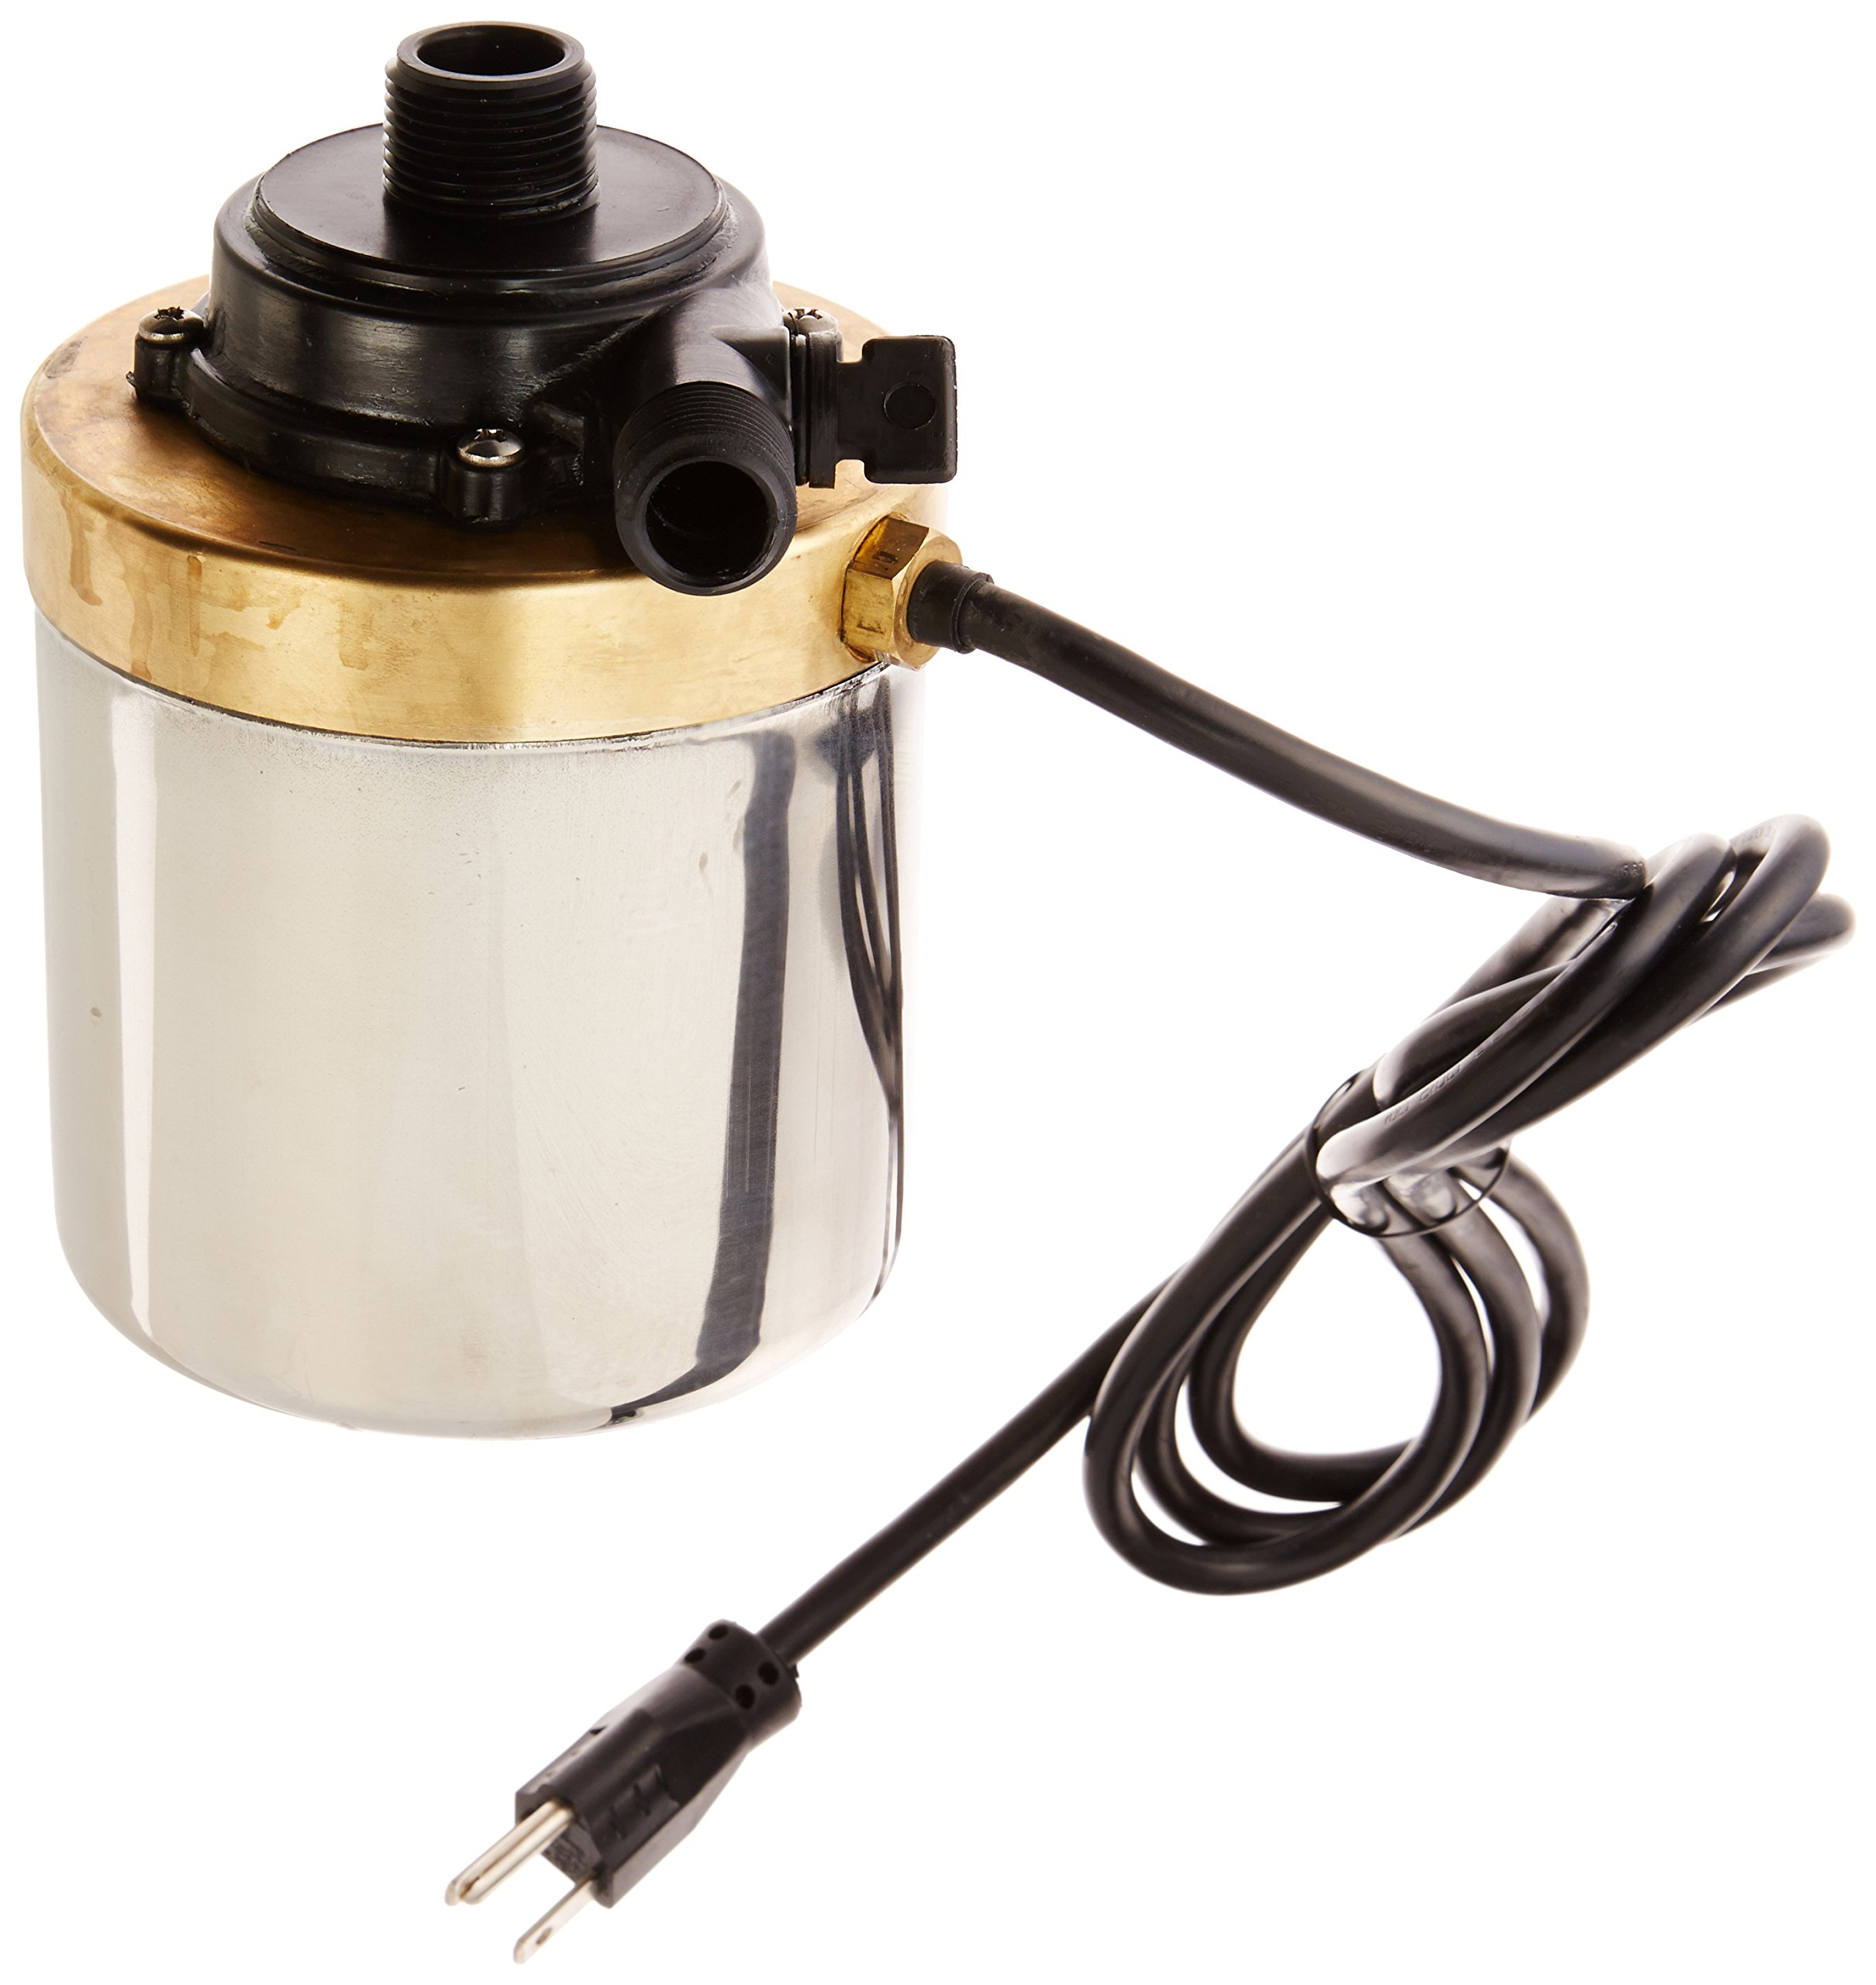 Little Giant 517005 Stainless Steel 580GPH Pump with 6-Feet Cord, Bronze